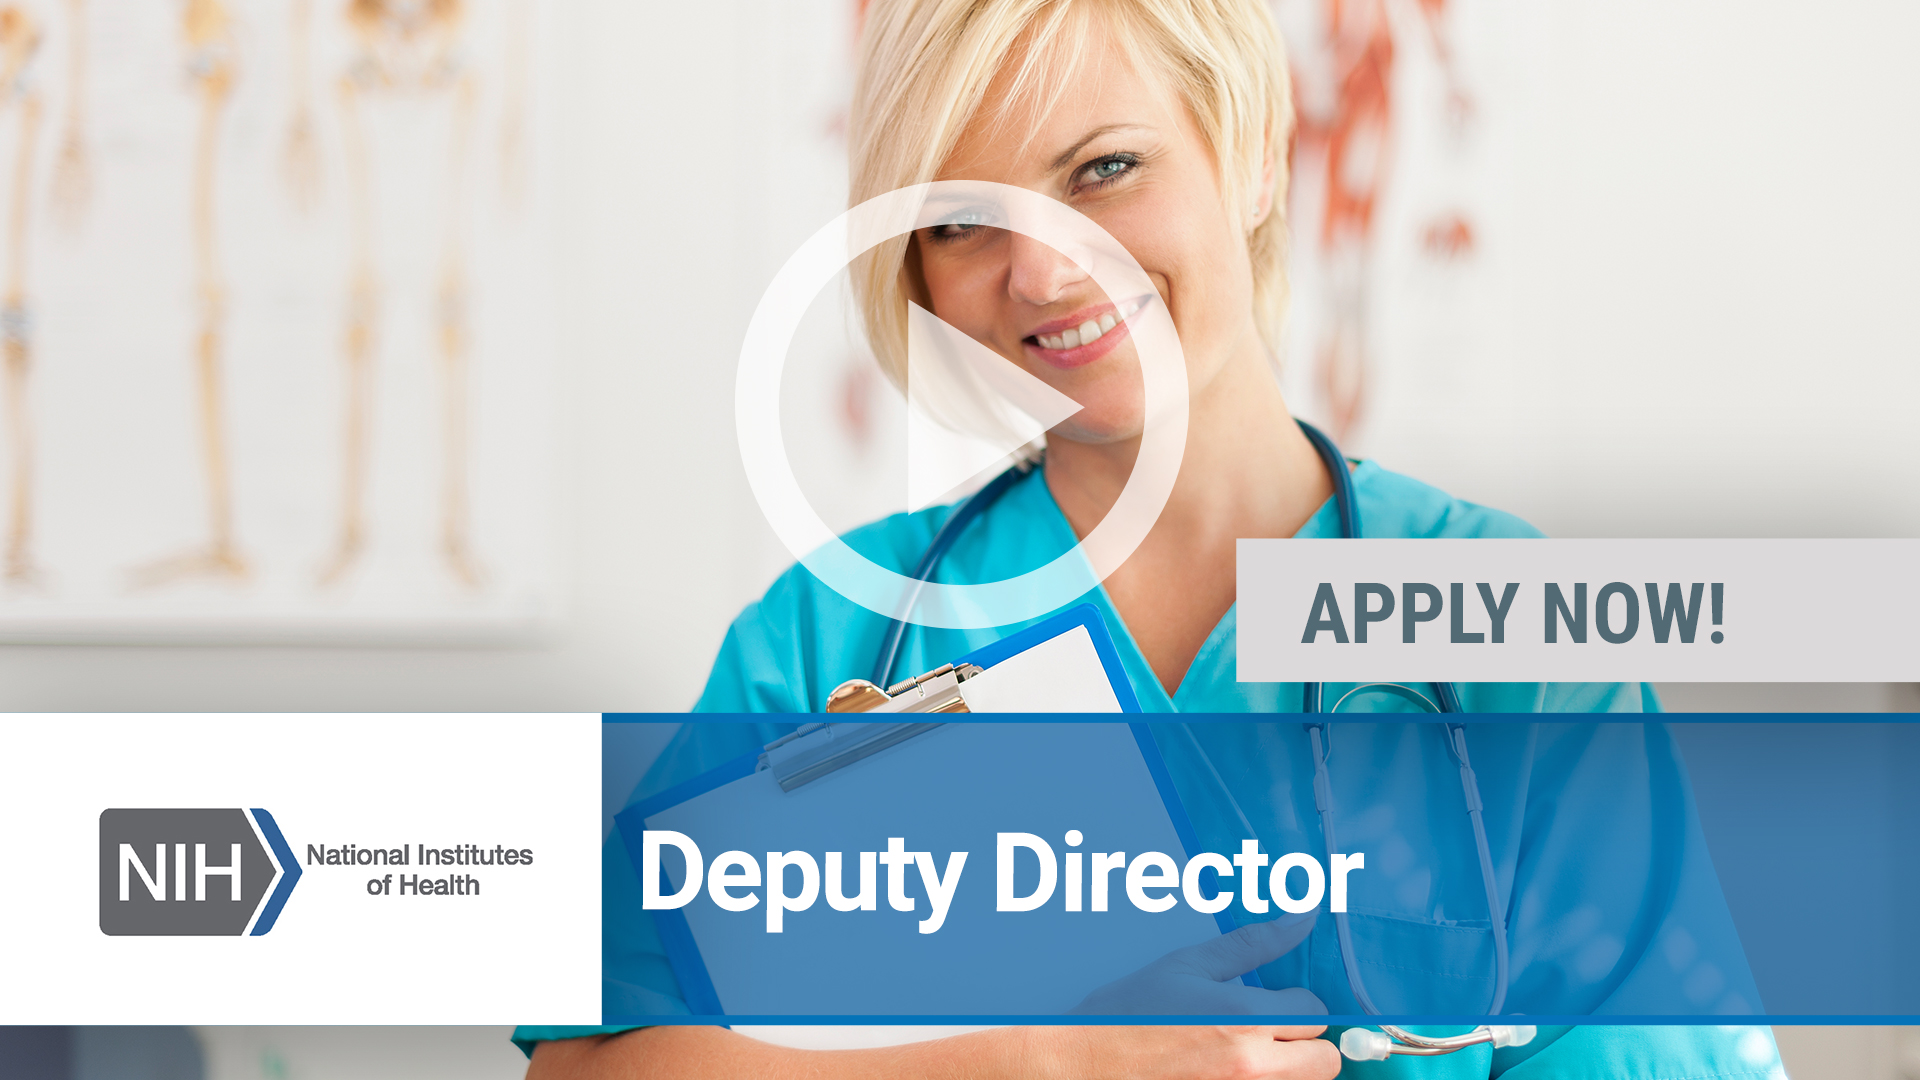 Watch our careers video for available job opening Deputy Director for the National Institute of Nur in Bethesda, MD